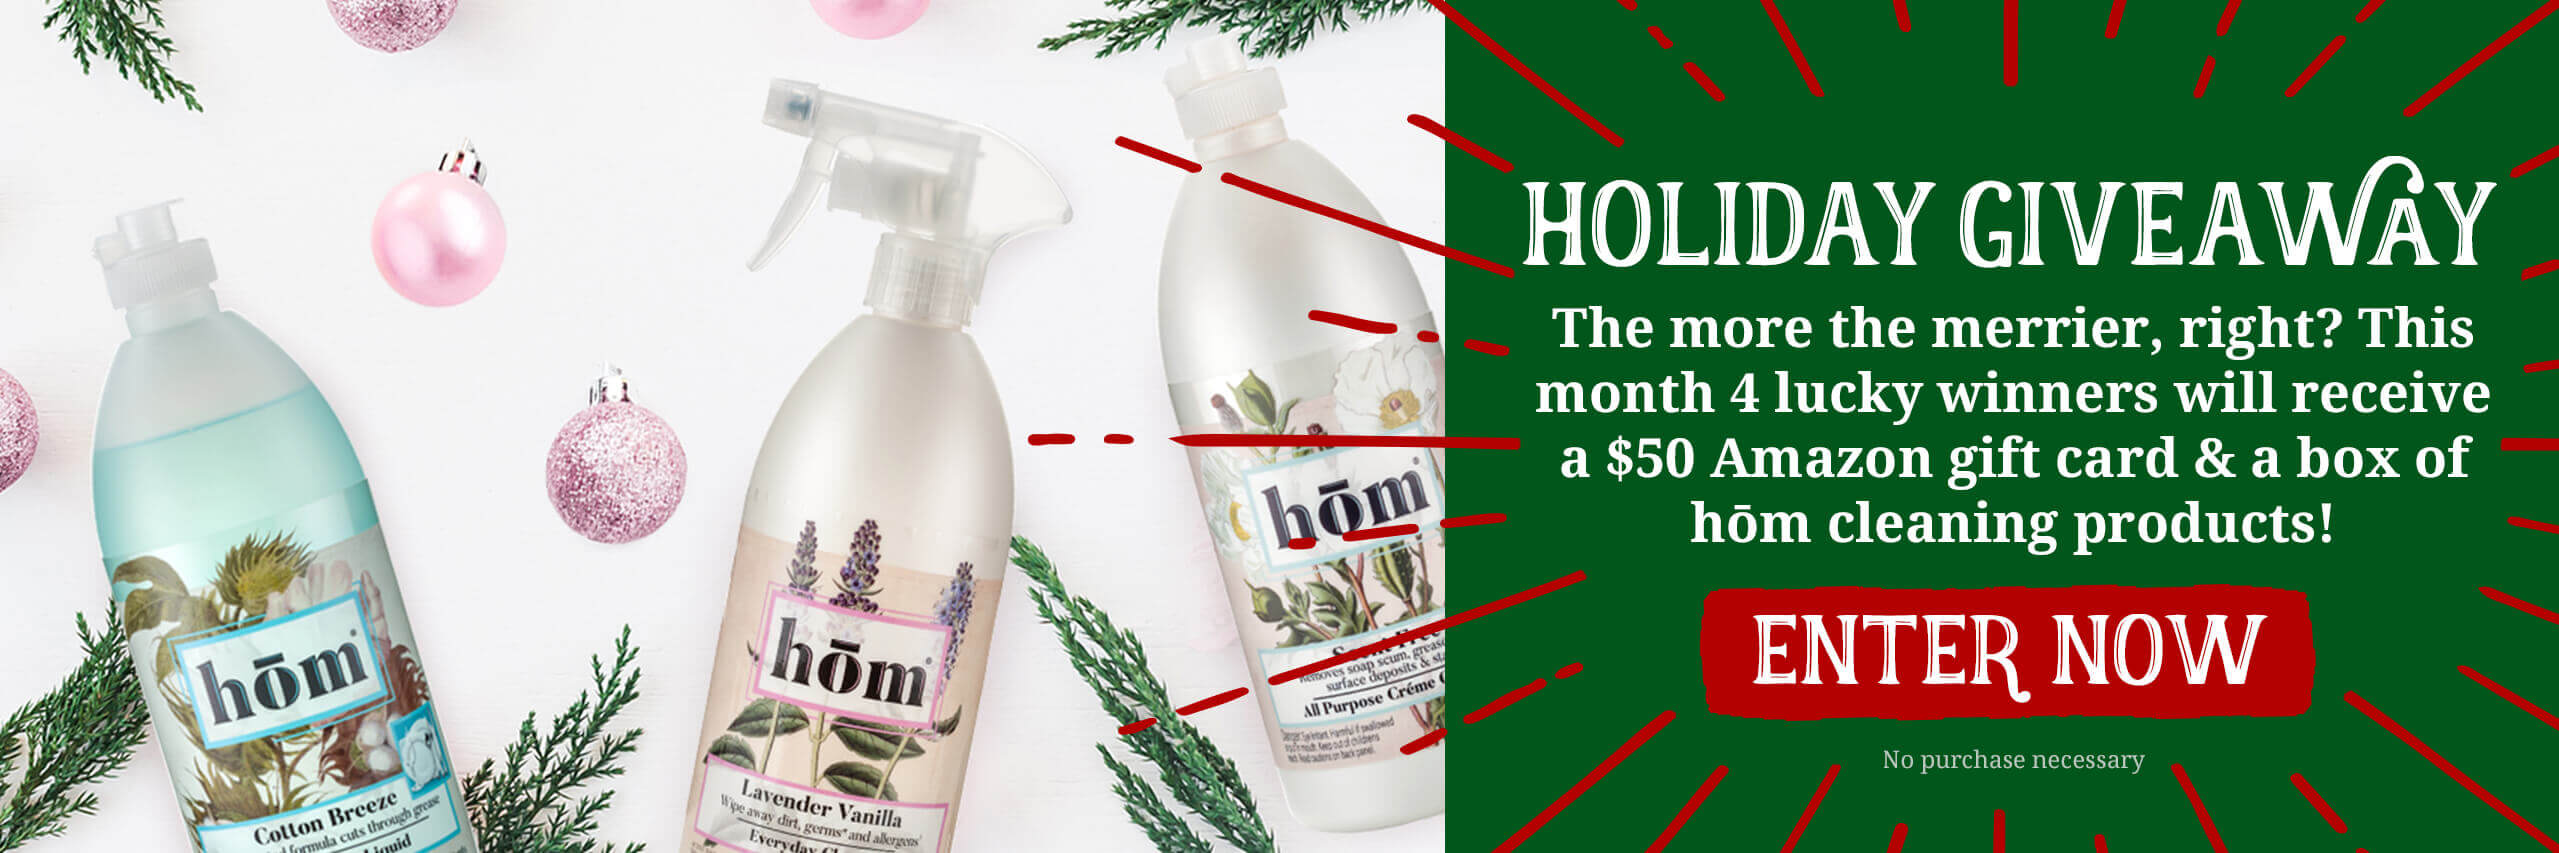 Holiday Giveaway. Click to Enter A Chance to win Amazon Gift Card and hom products.